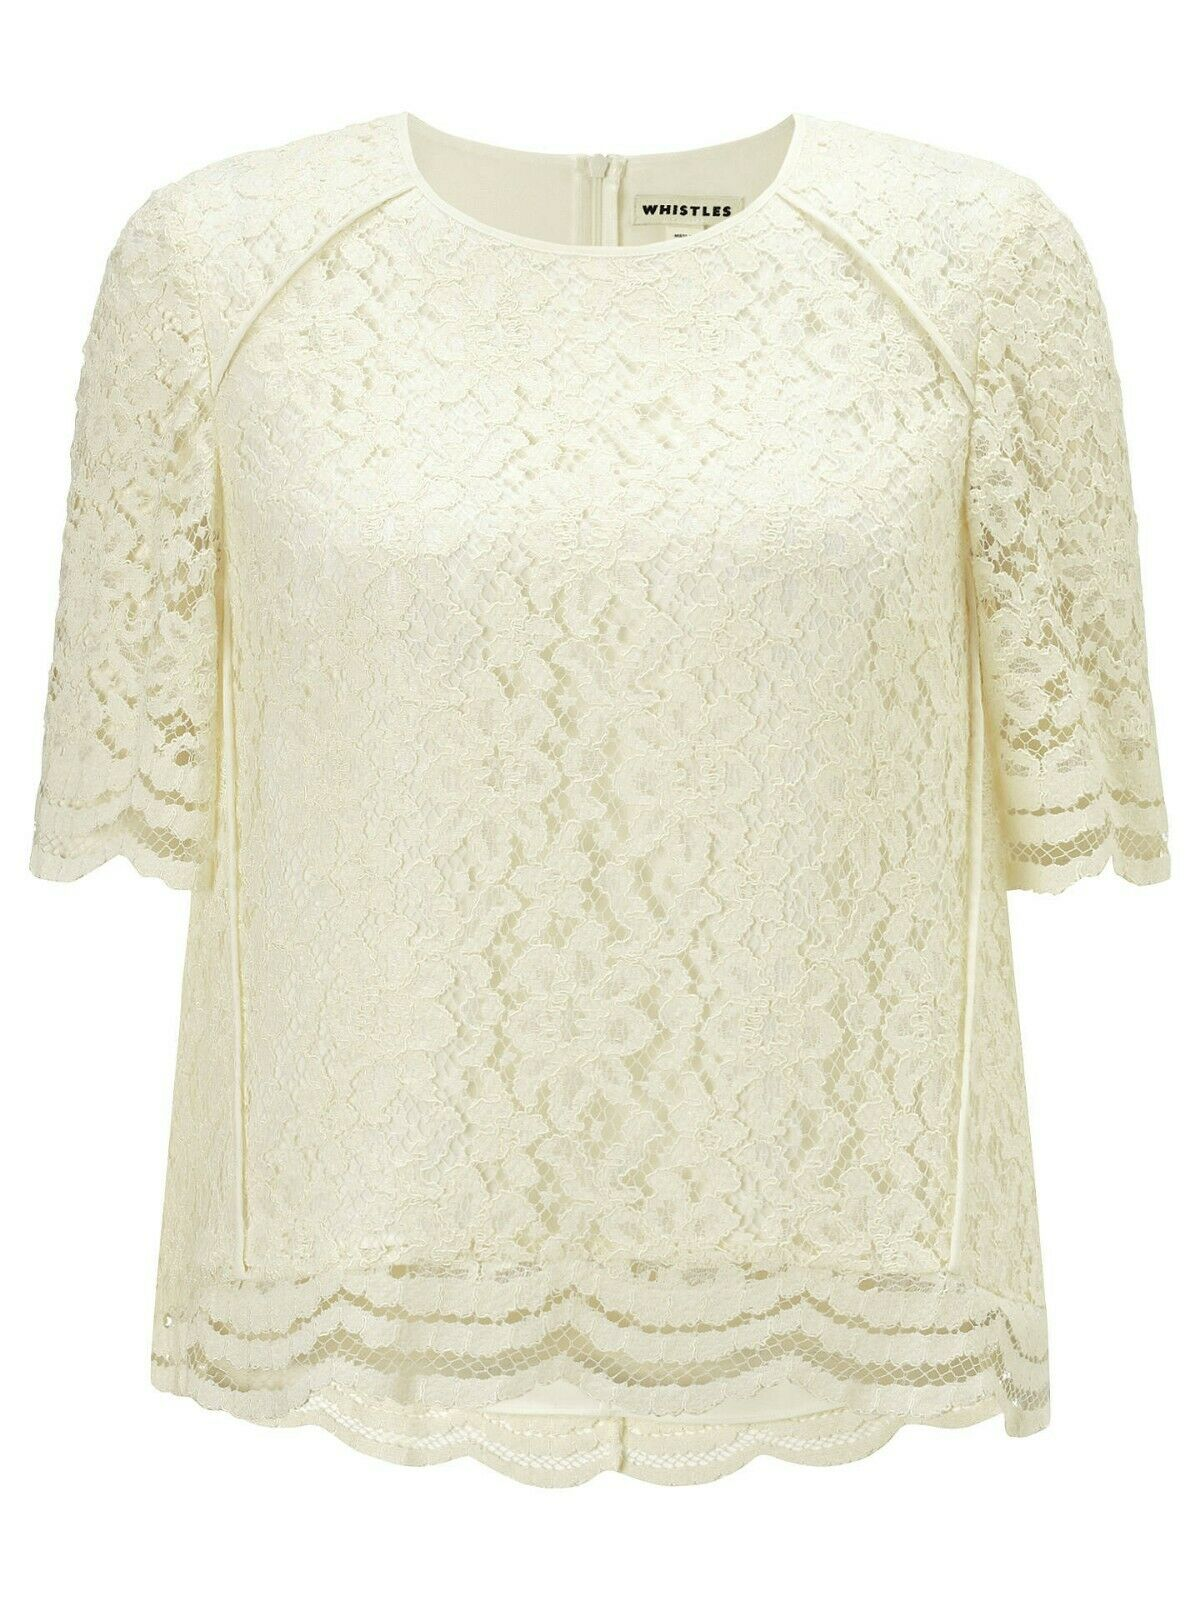 Whistles Leith pizzo bianco donna Top Camicetta-Taglia Camicetta-Taglia Camicetta-Taglia 65e457